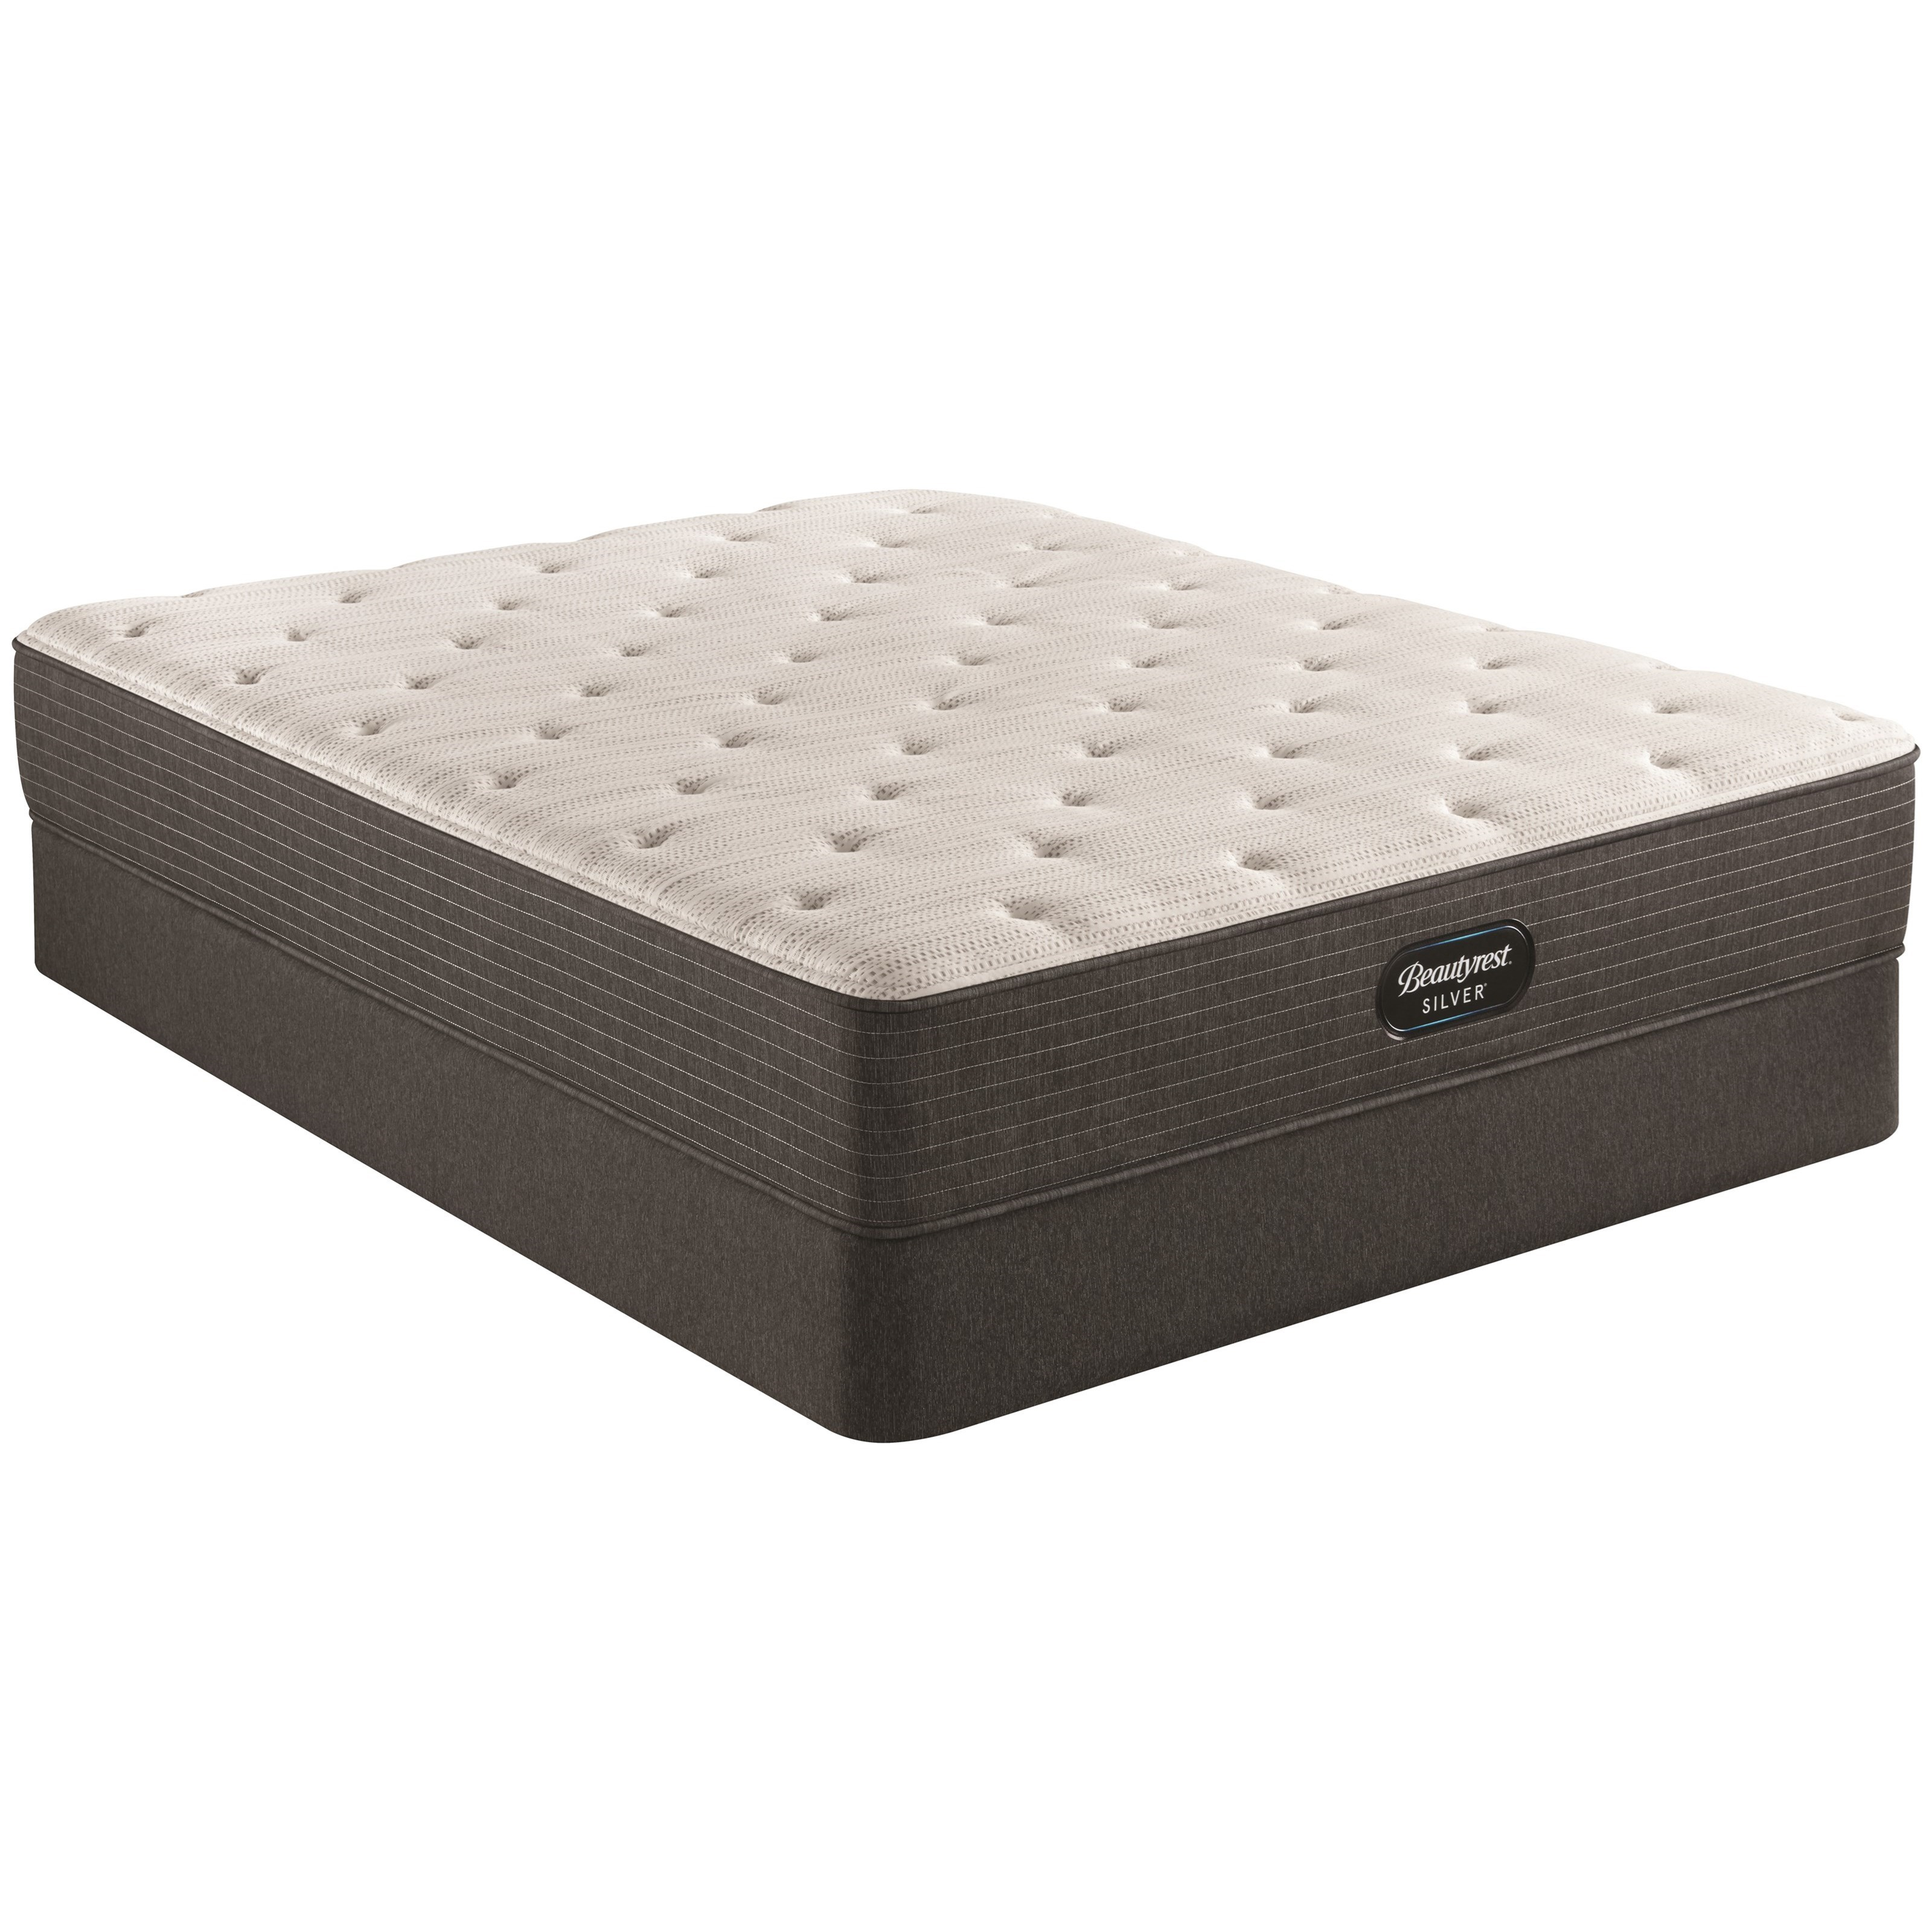 "BRS900 Medium Firm Twin XL 11 3/4"" Pocketed Coil Mattress Set by Beautyrest at EFO Furniture Outlet"